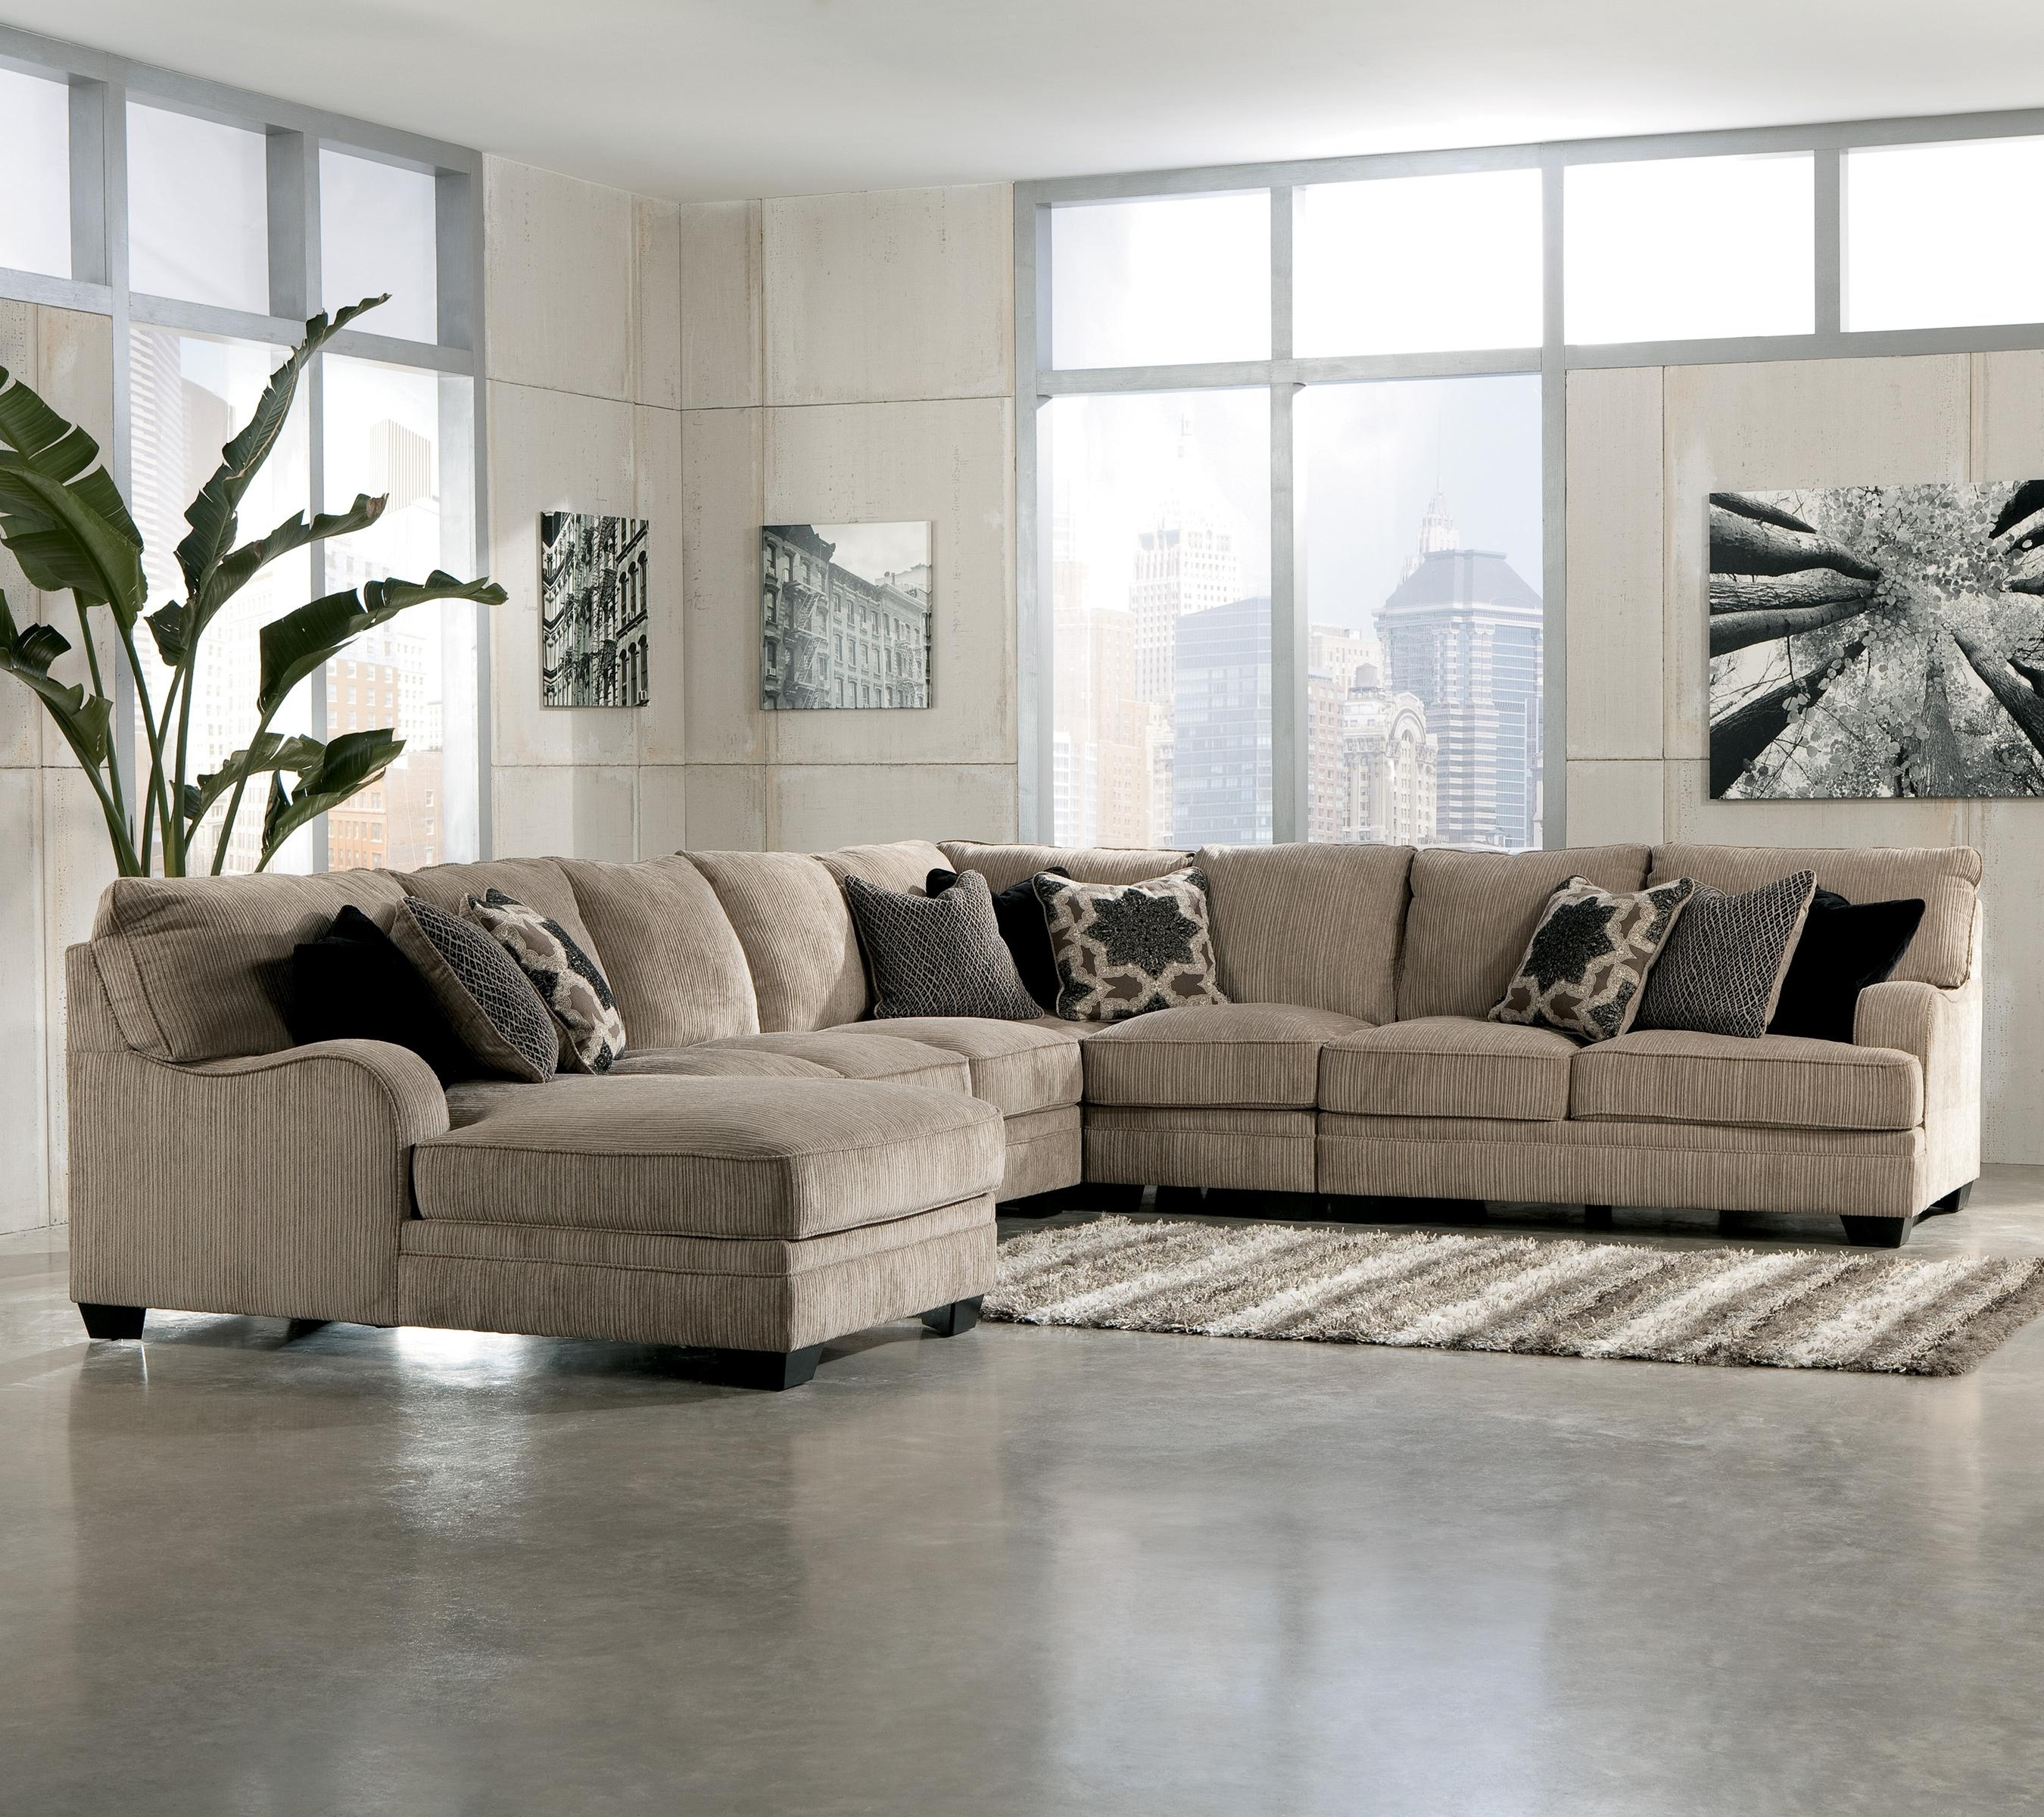 Furniture: Ashley Furniture Charlotte Nc | Ashley Furniture Buffalo With Regard To Sectional Sofas At Buffalo Ny (View 9 of 15)